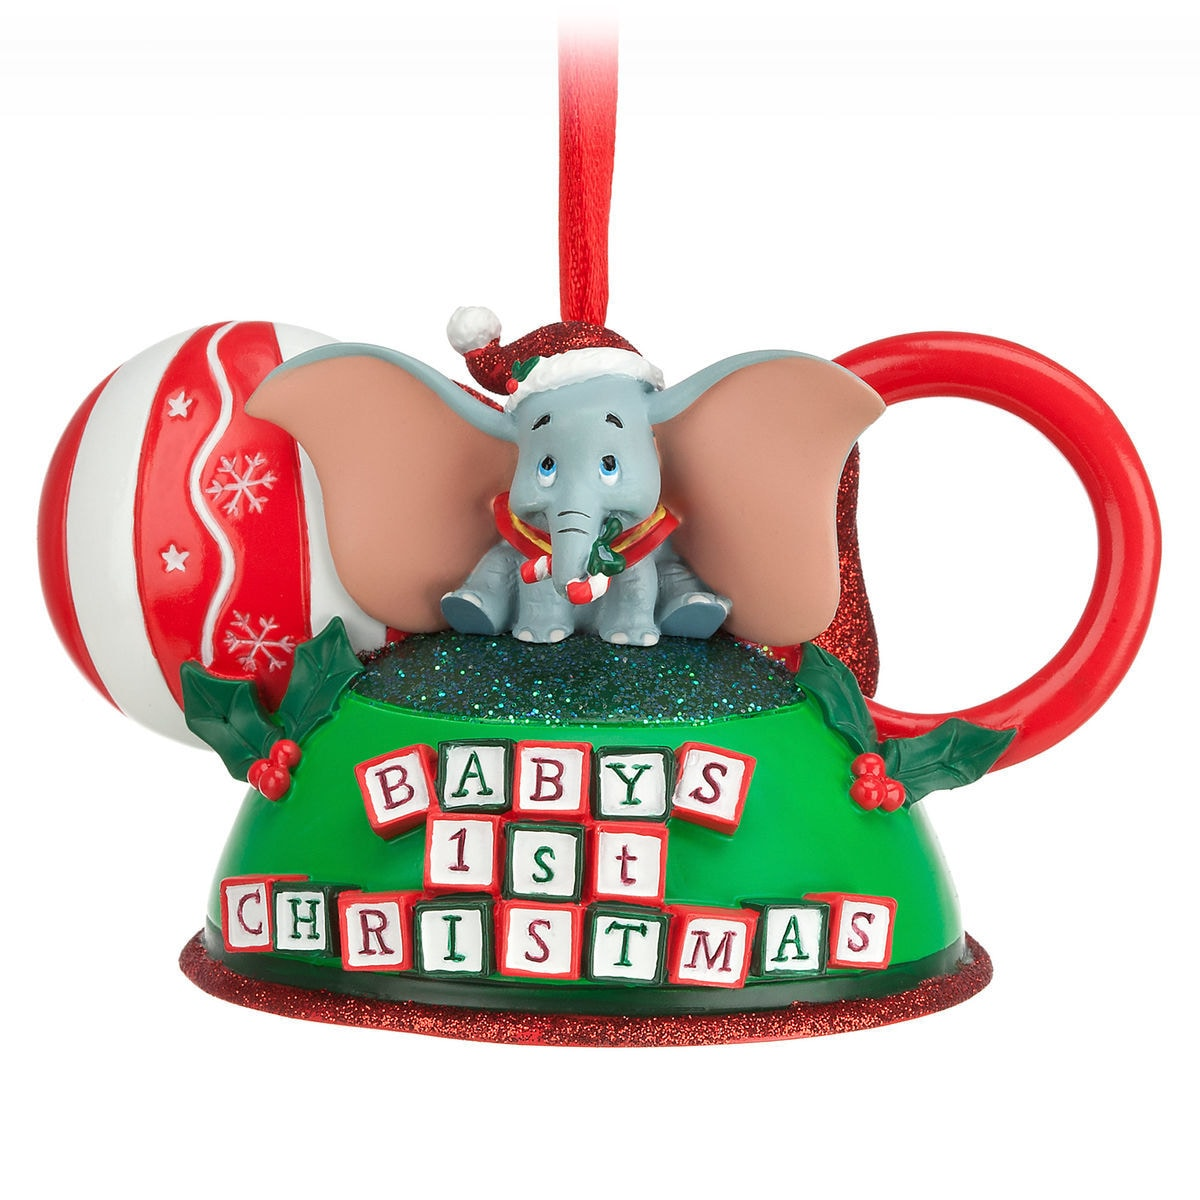 Dumbo Babys First Christmas Ear Hat Ornament Shopdisney